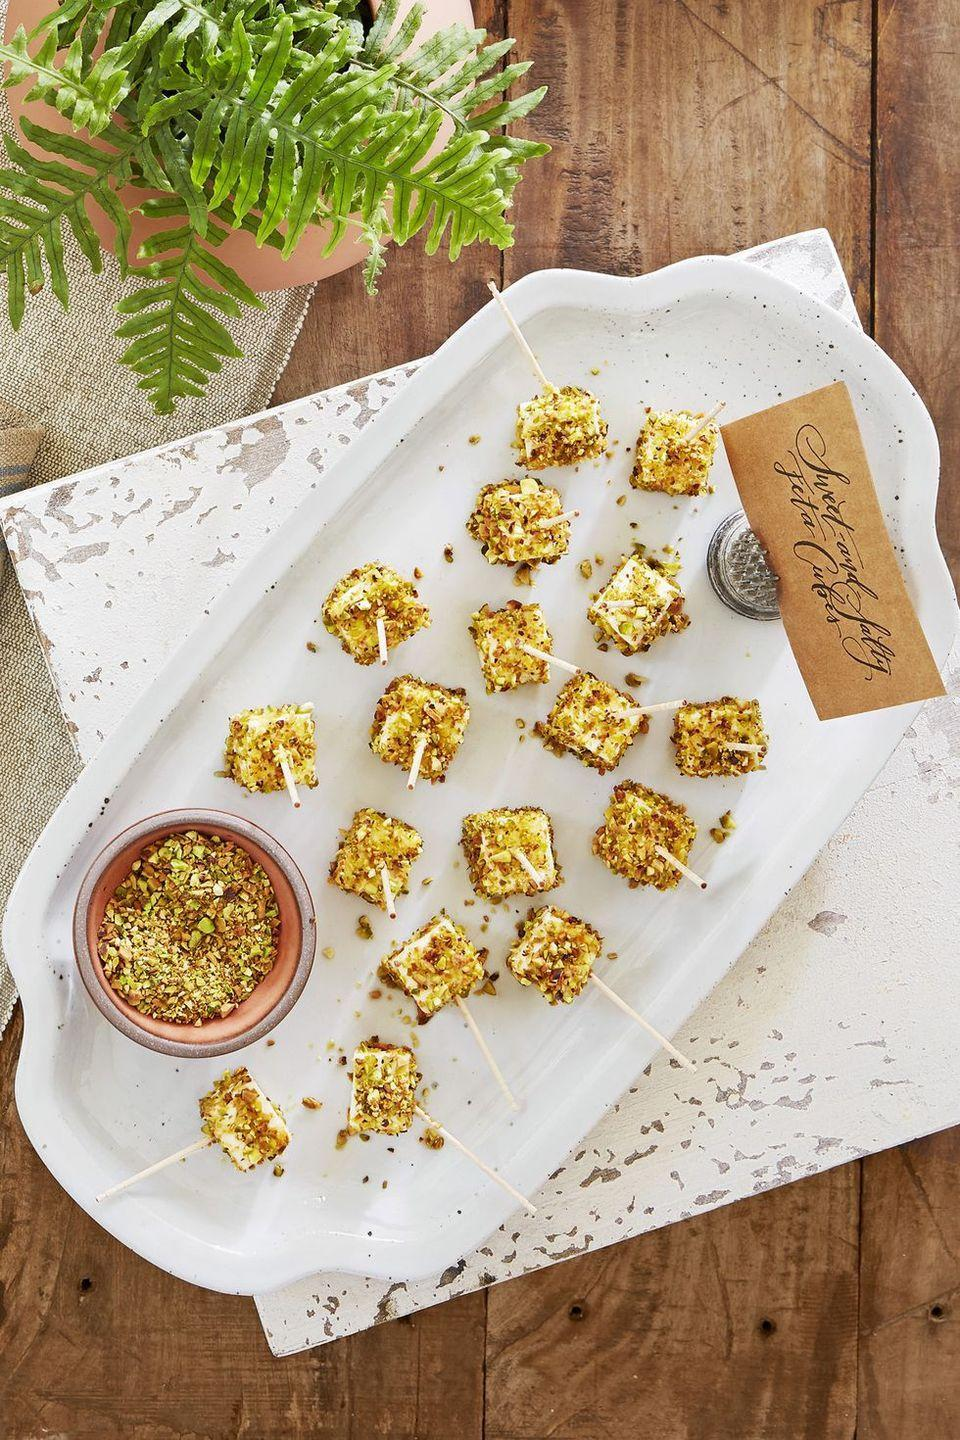 """<p>Be prepared to make plenty of these crunchy cheese bites. They'll fly right off the platter.</p><p><strong><a href=""""https://www.countryliving.com/food-drinks/a22739084/sweet-and-salty-feta-cubes-recipe/"""" rel=""""nofollow noopener"""" target=""""_blank"""" data-ylk=""""slk:Get the recipe"""" class=""""link rapid-noclick-resp"""">Get the recipe</a>.</strong> </p>"""